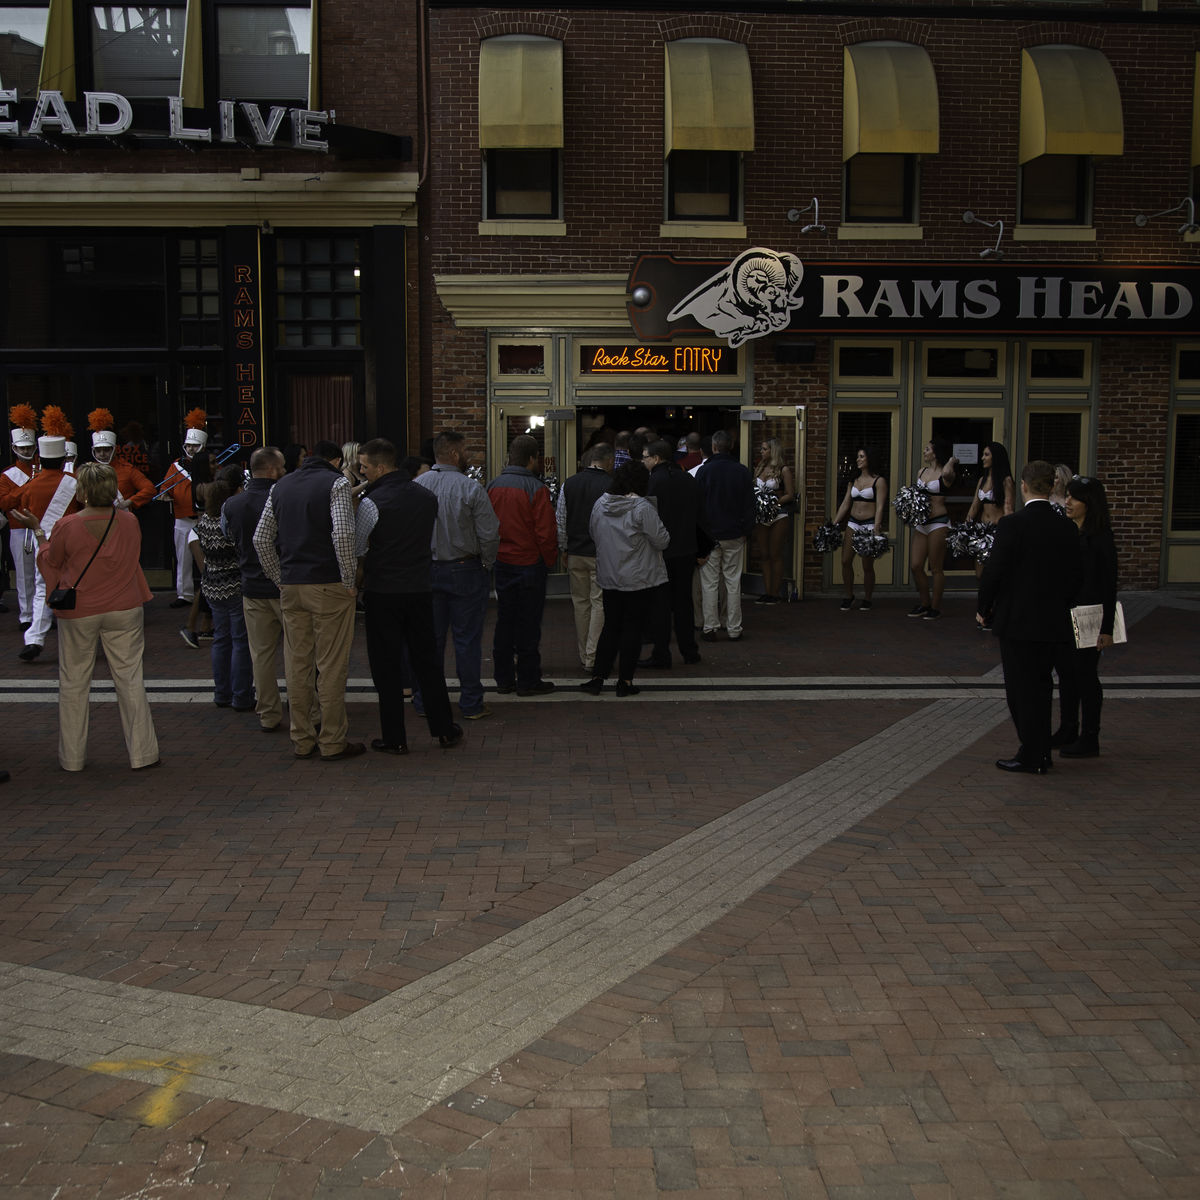 Exterior image of Ram's Head Live! With signage and people outside